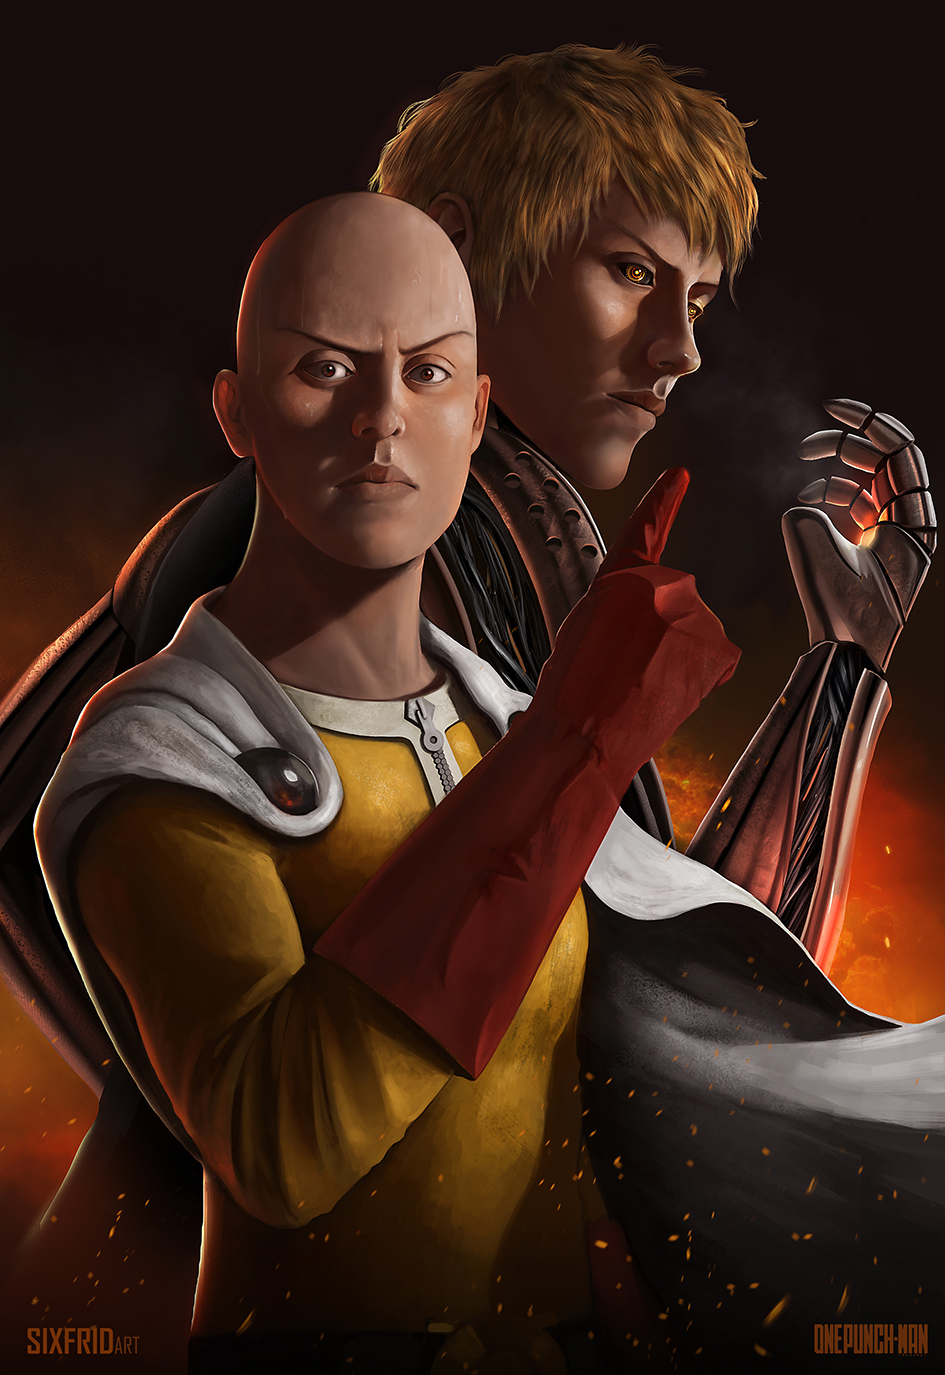 One punch man Saitama and Genos by sixfrid